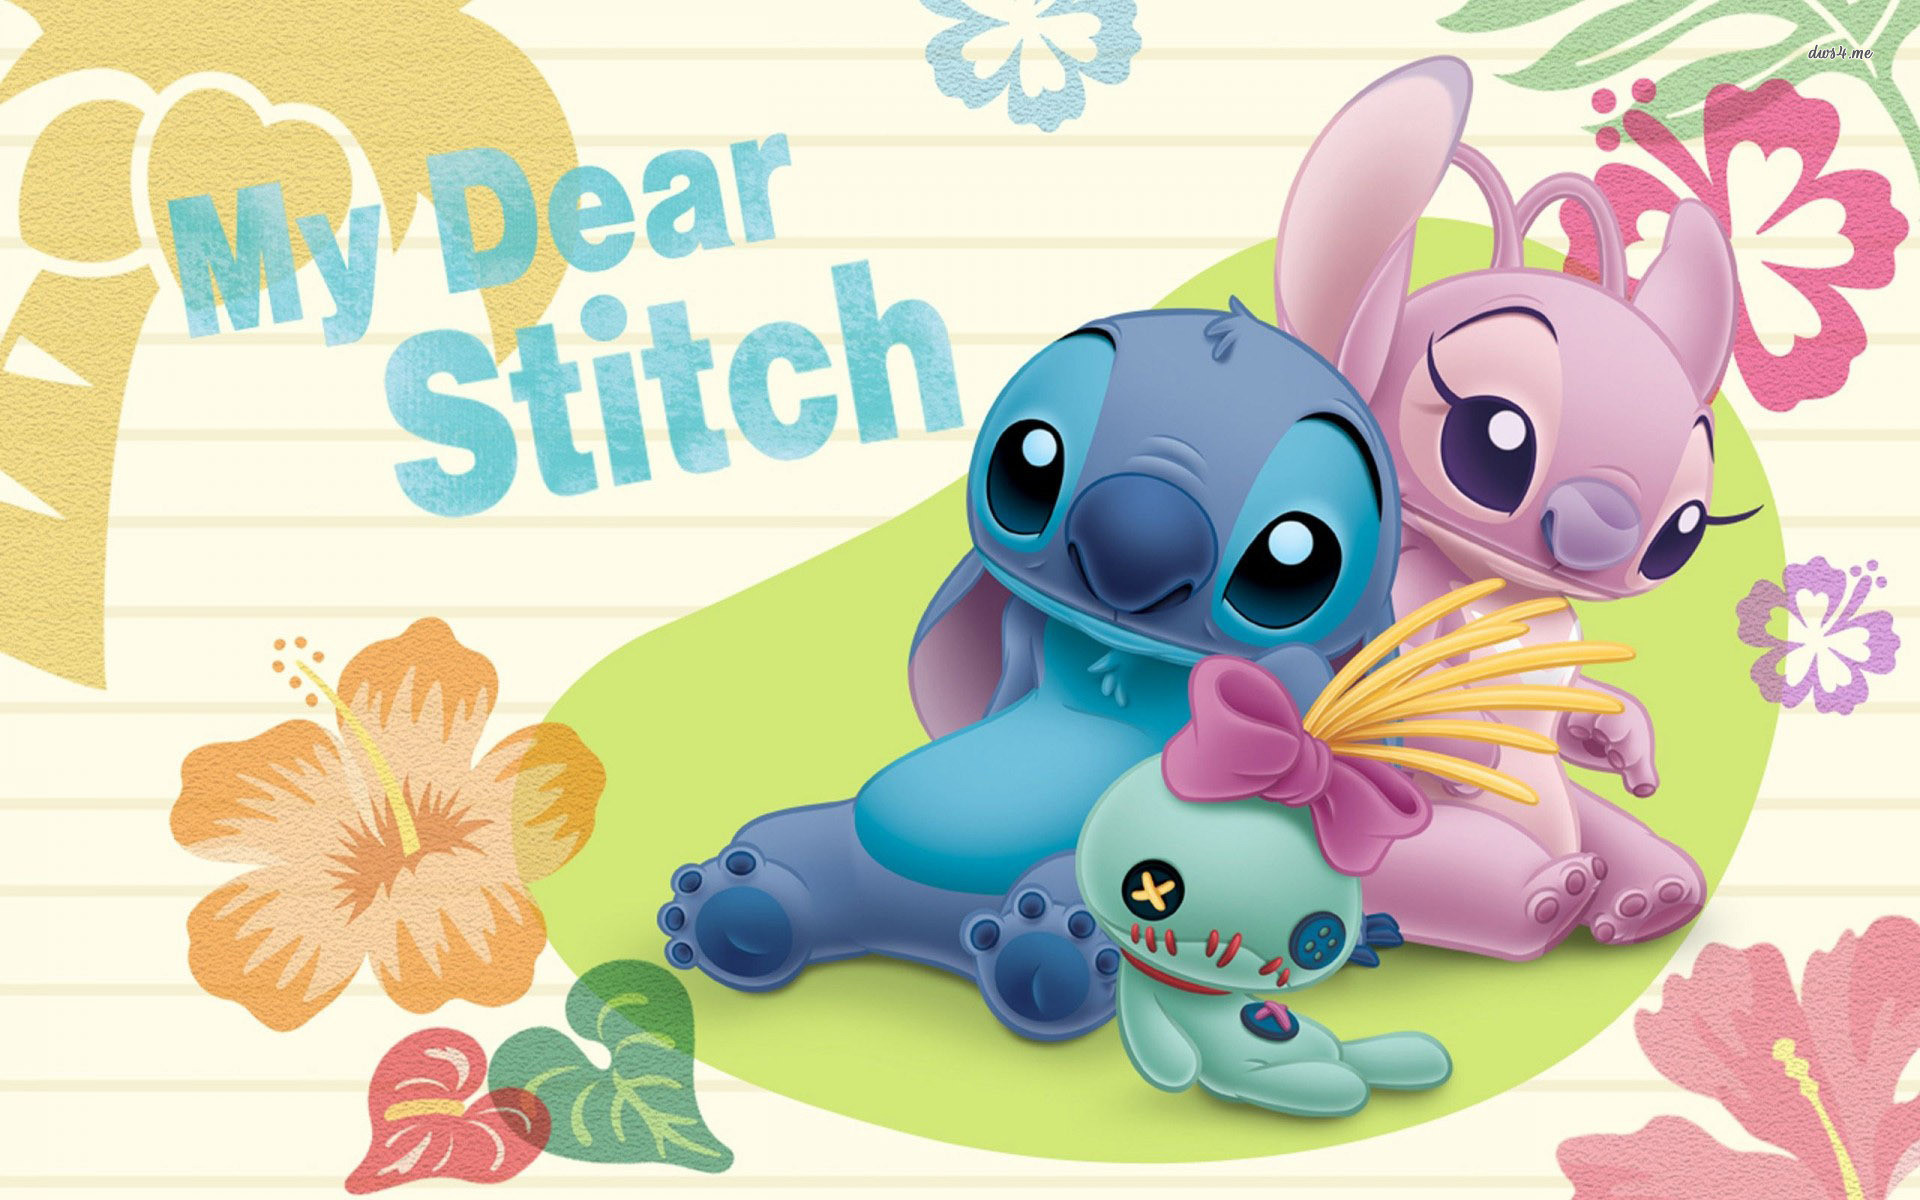 lilo and stitch Computer Wallpapers, Desktop Backgrounds . …